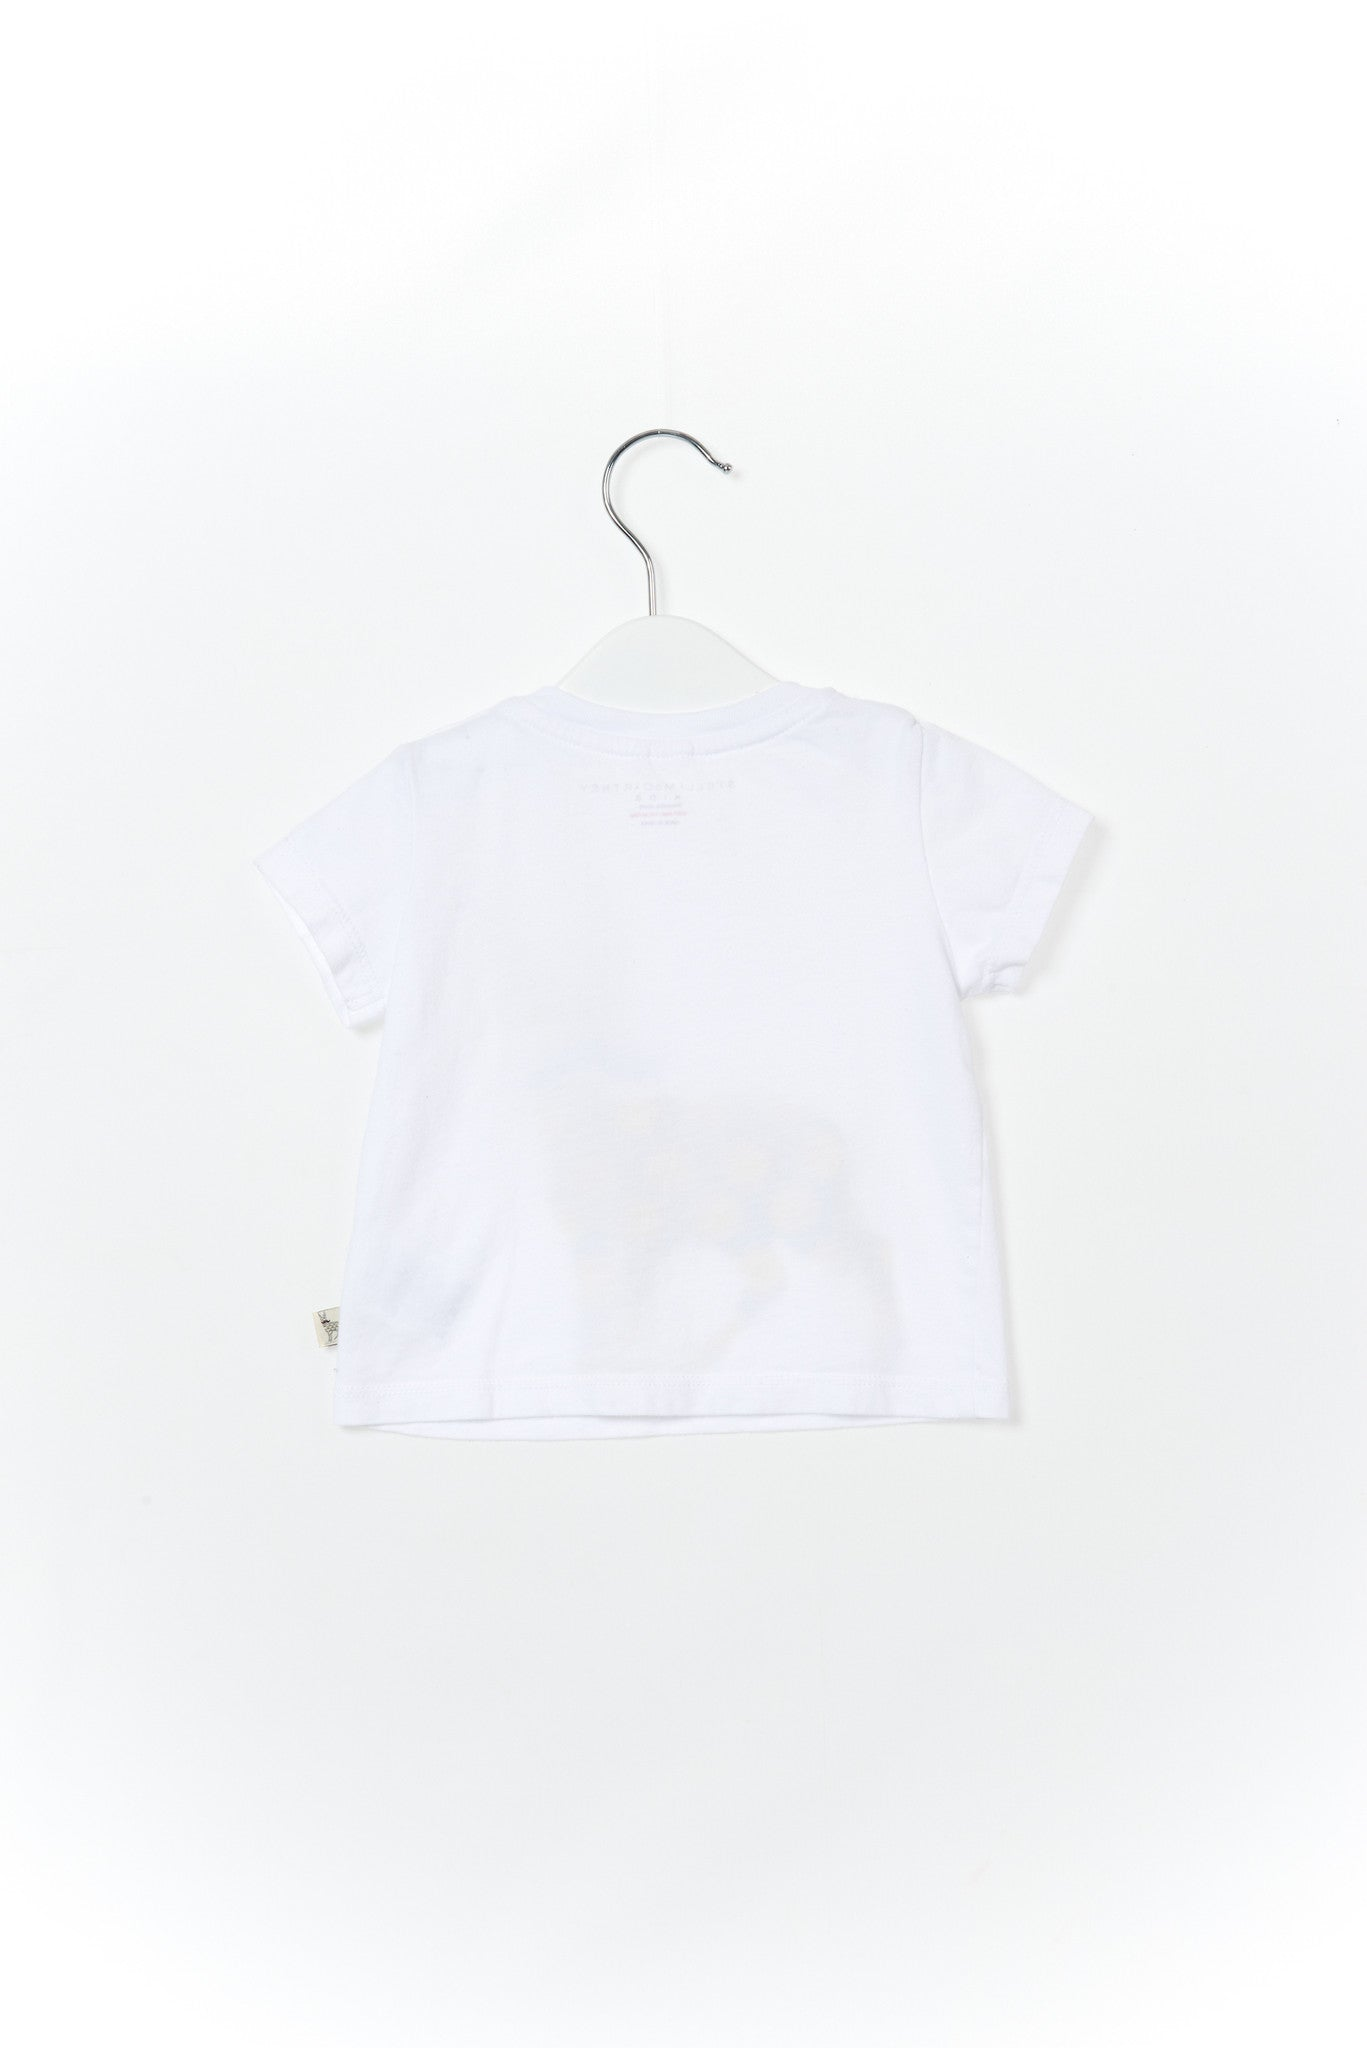 Top 9M, Stella McCartney at Retykle - Online Baby & Kids Clothing Up to 90% Off